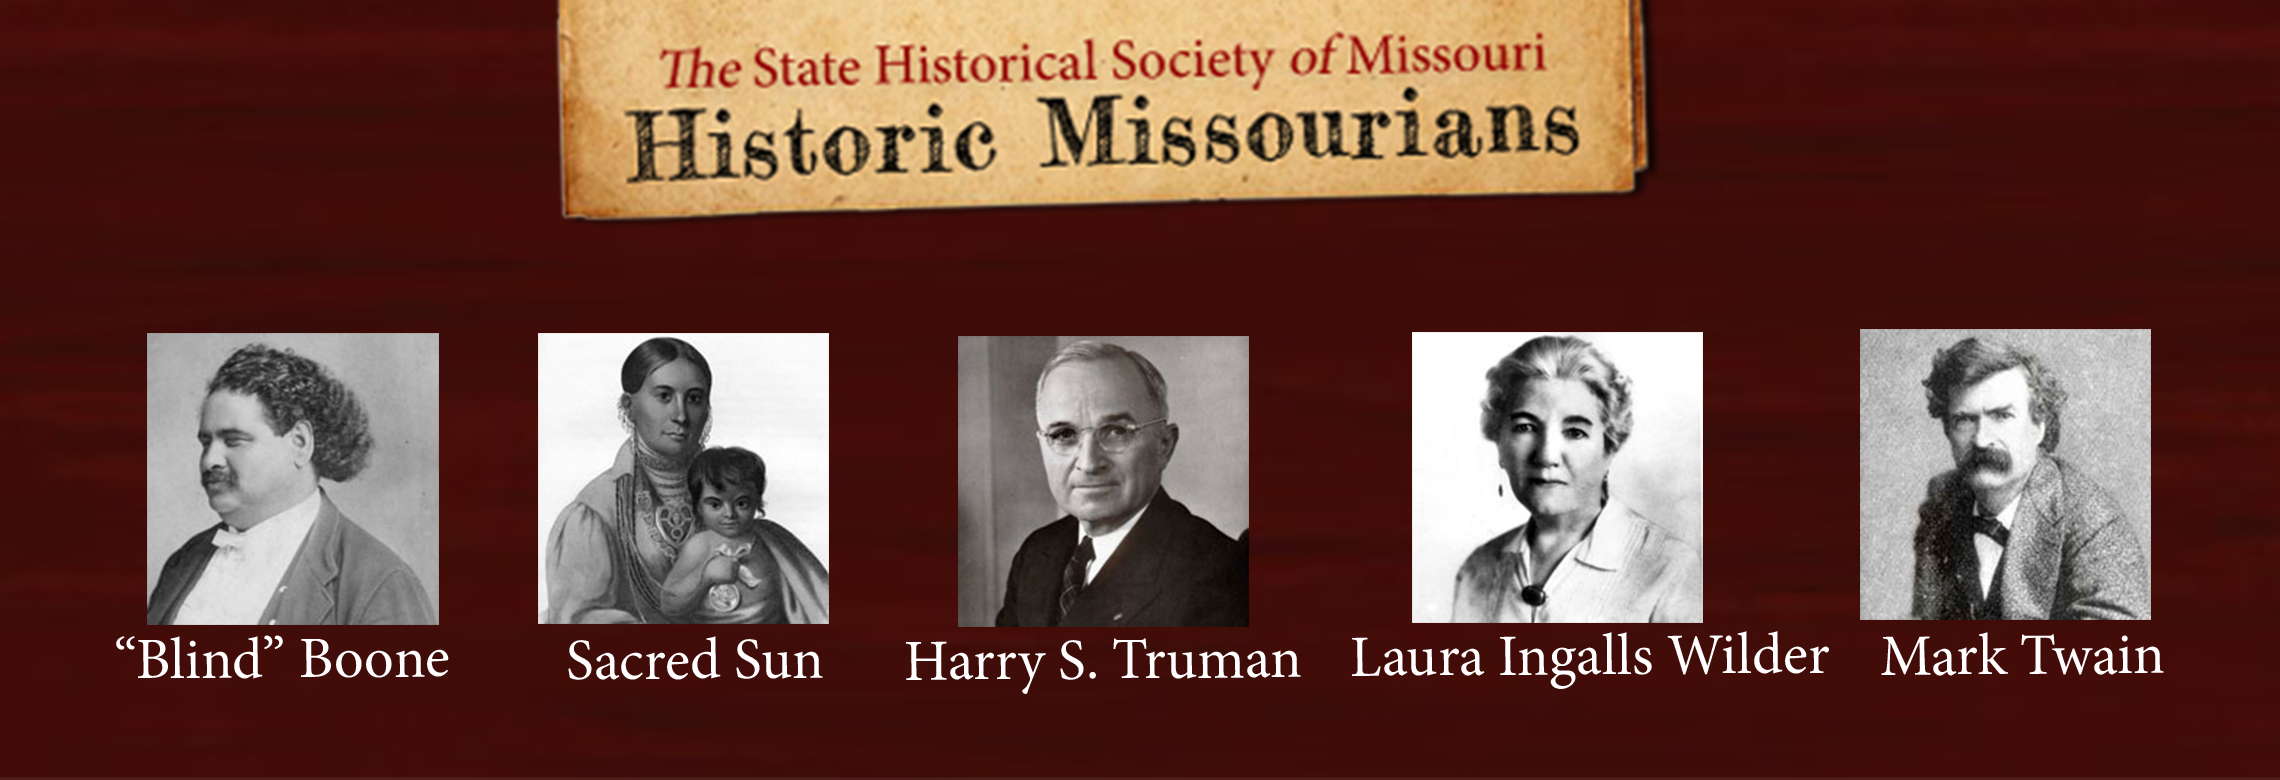 Historic Missourians banner